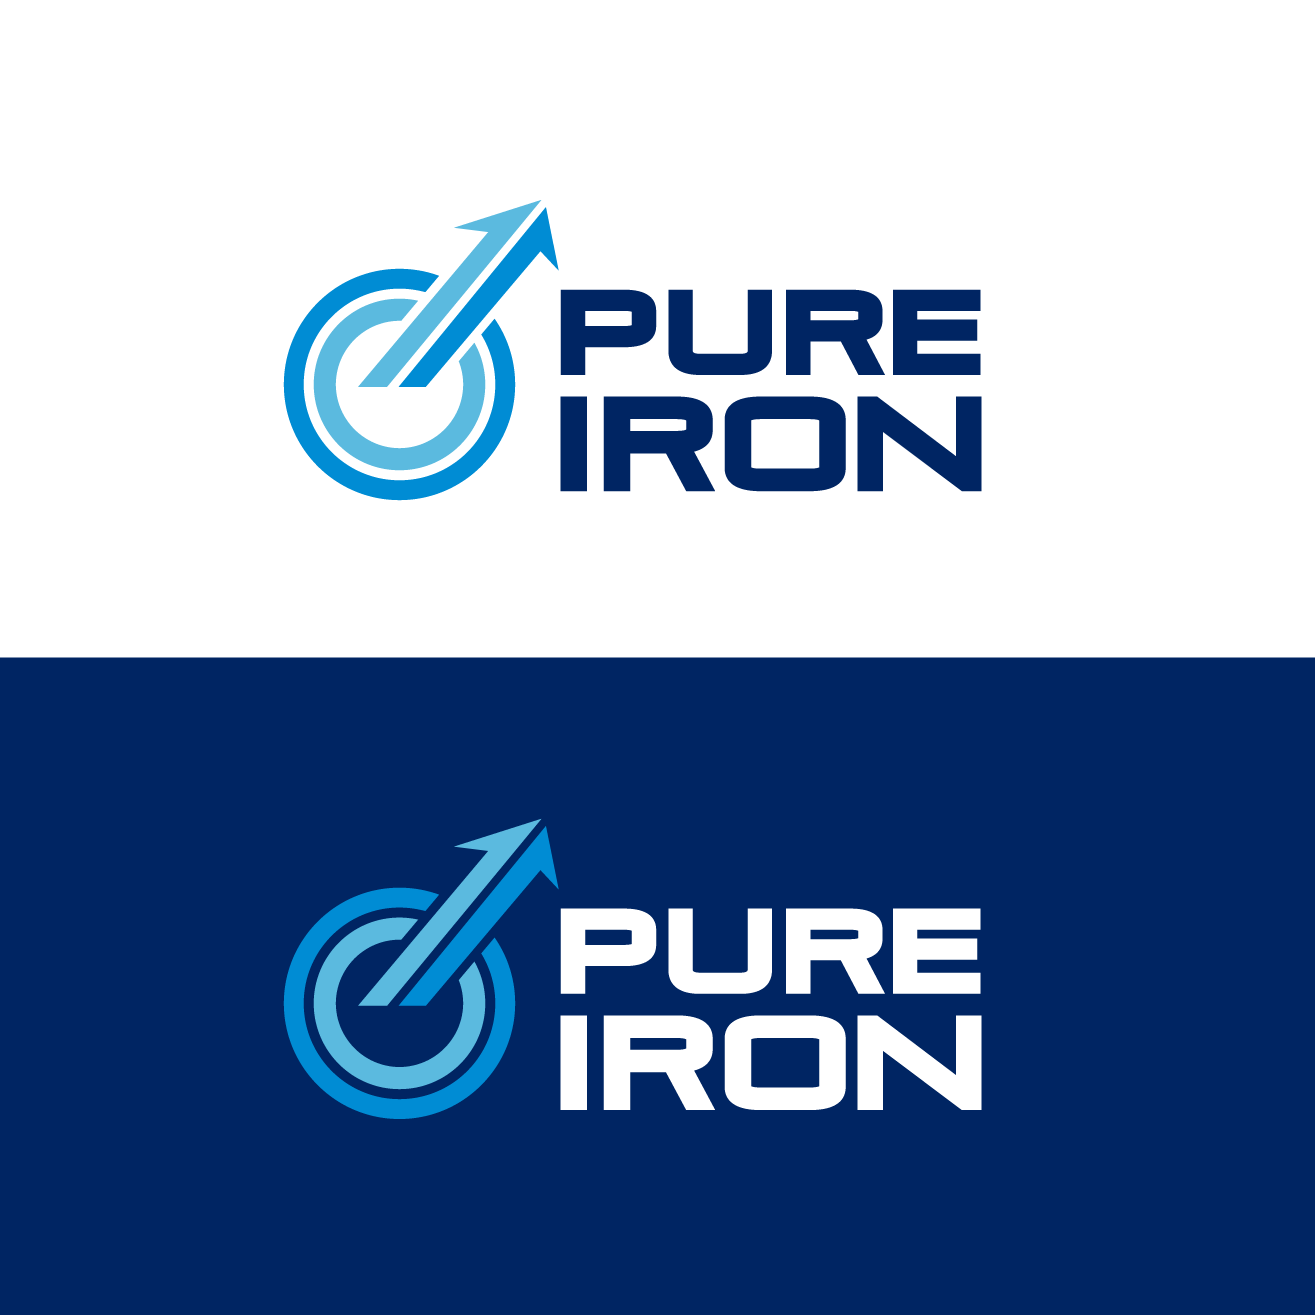 Logo Design by luna - Entry No. 128 in the Logo Design Contest Fun Logo Design for Pure Iron.